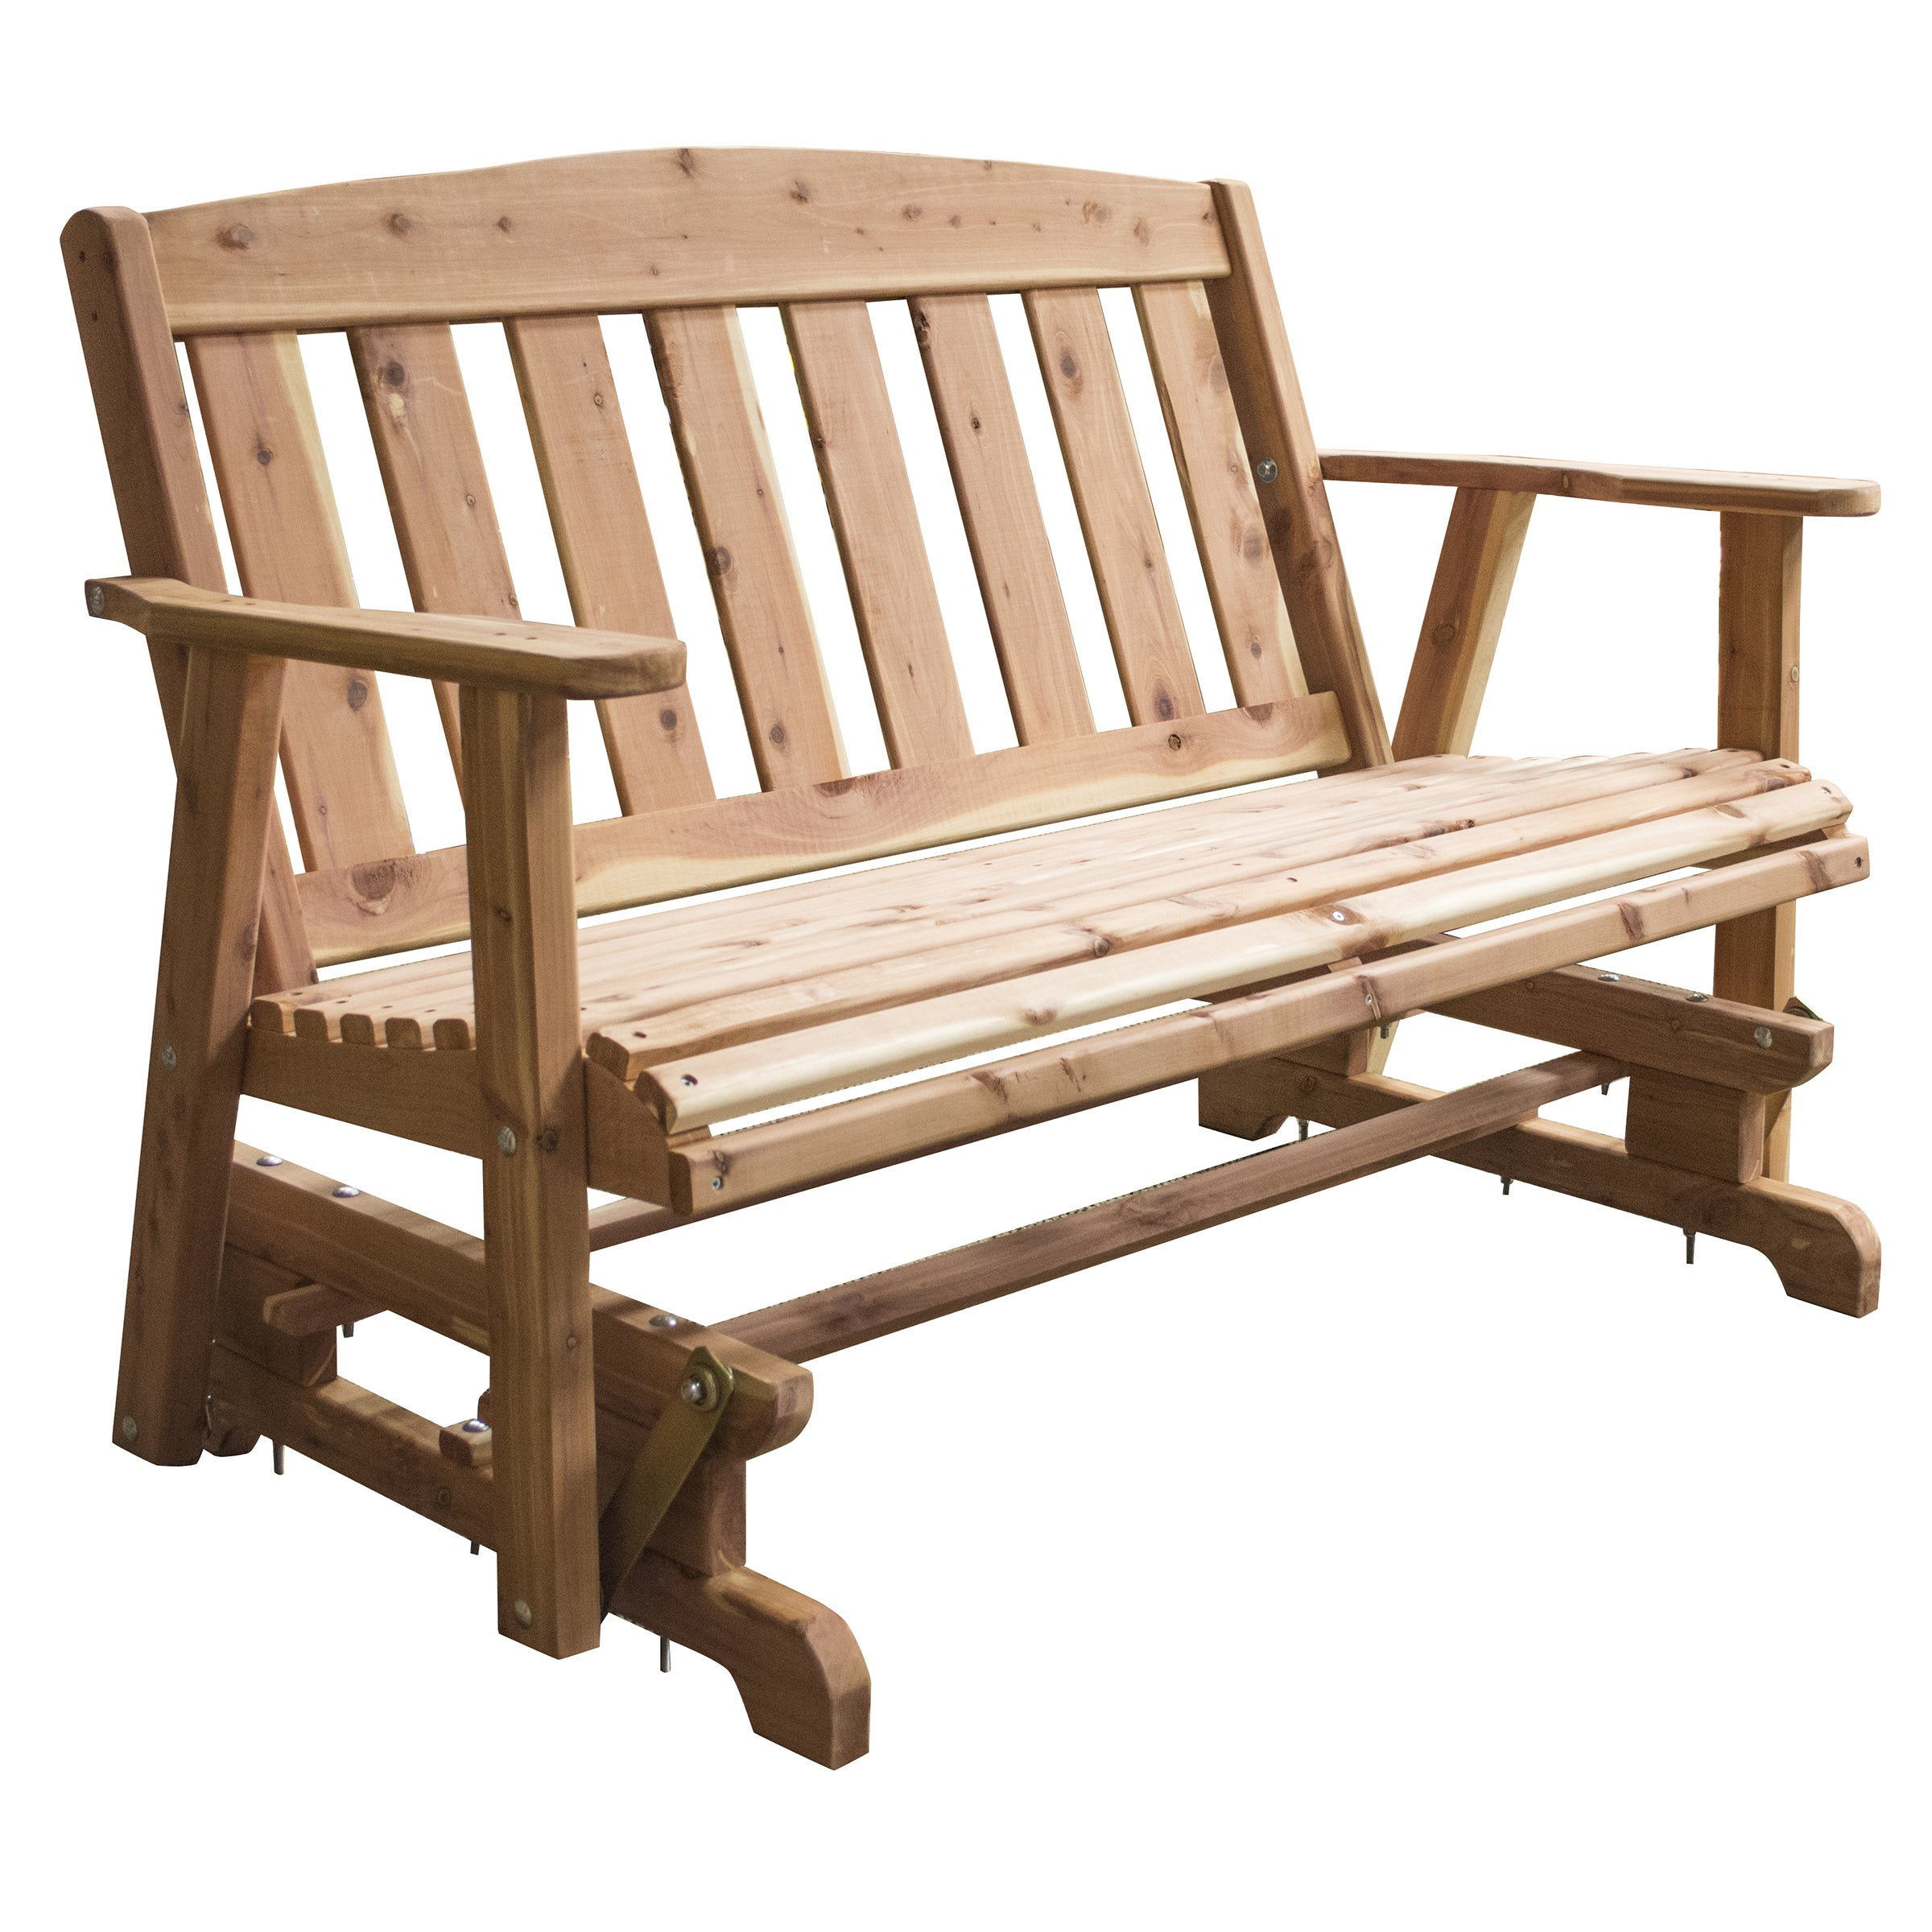 Amerihome Amish Made Glider Bench – Brown Inside 2 Person Natural Cedar Wood Outdoor Gliders (Image 5 of 25)